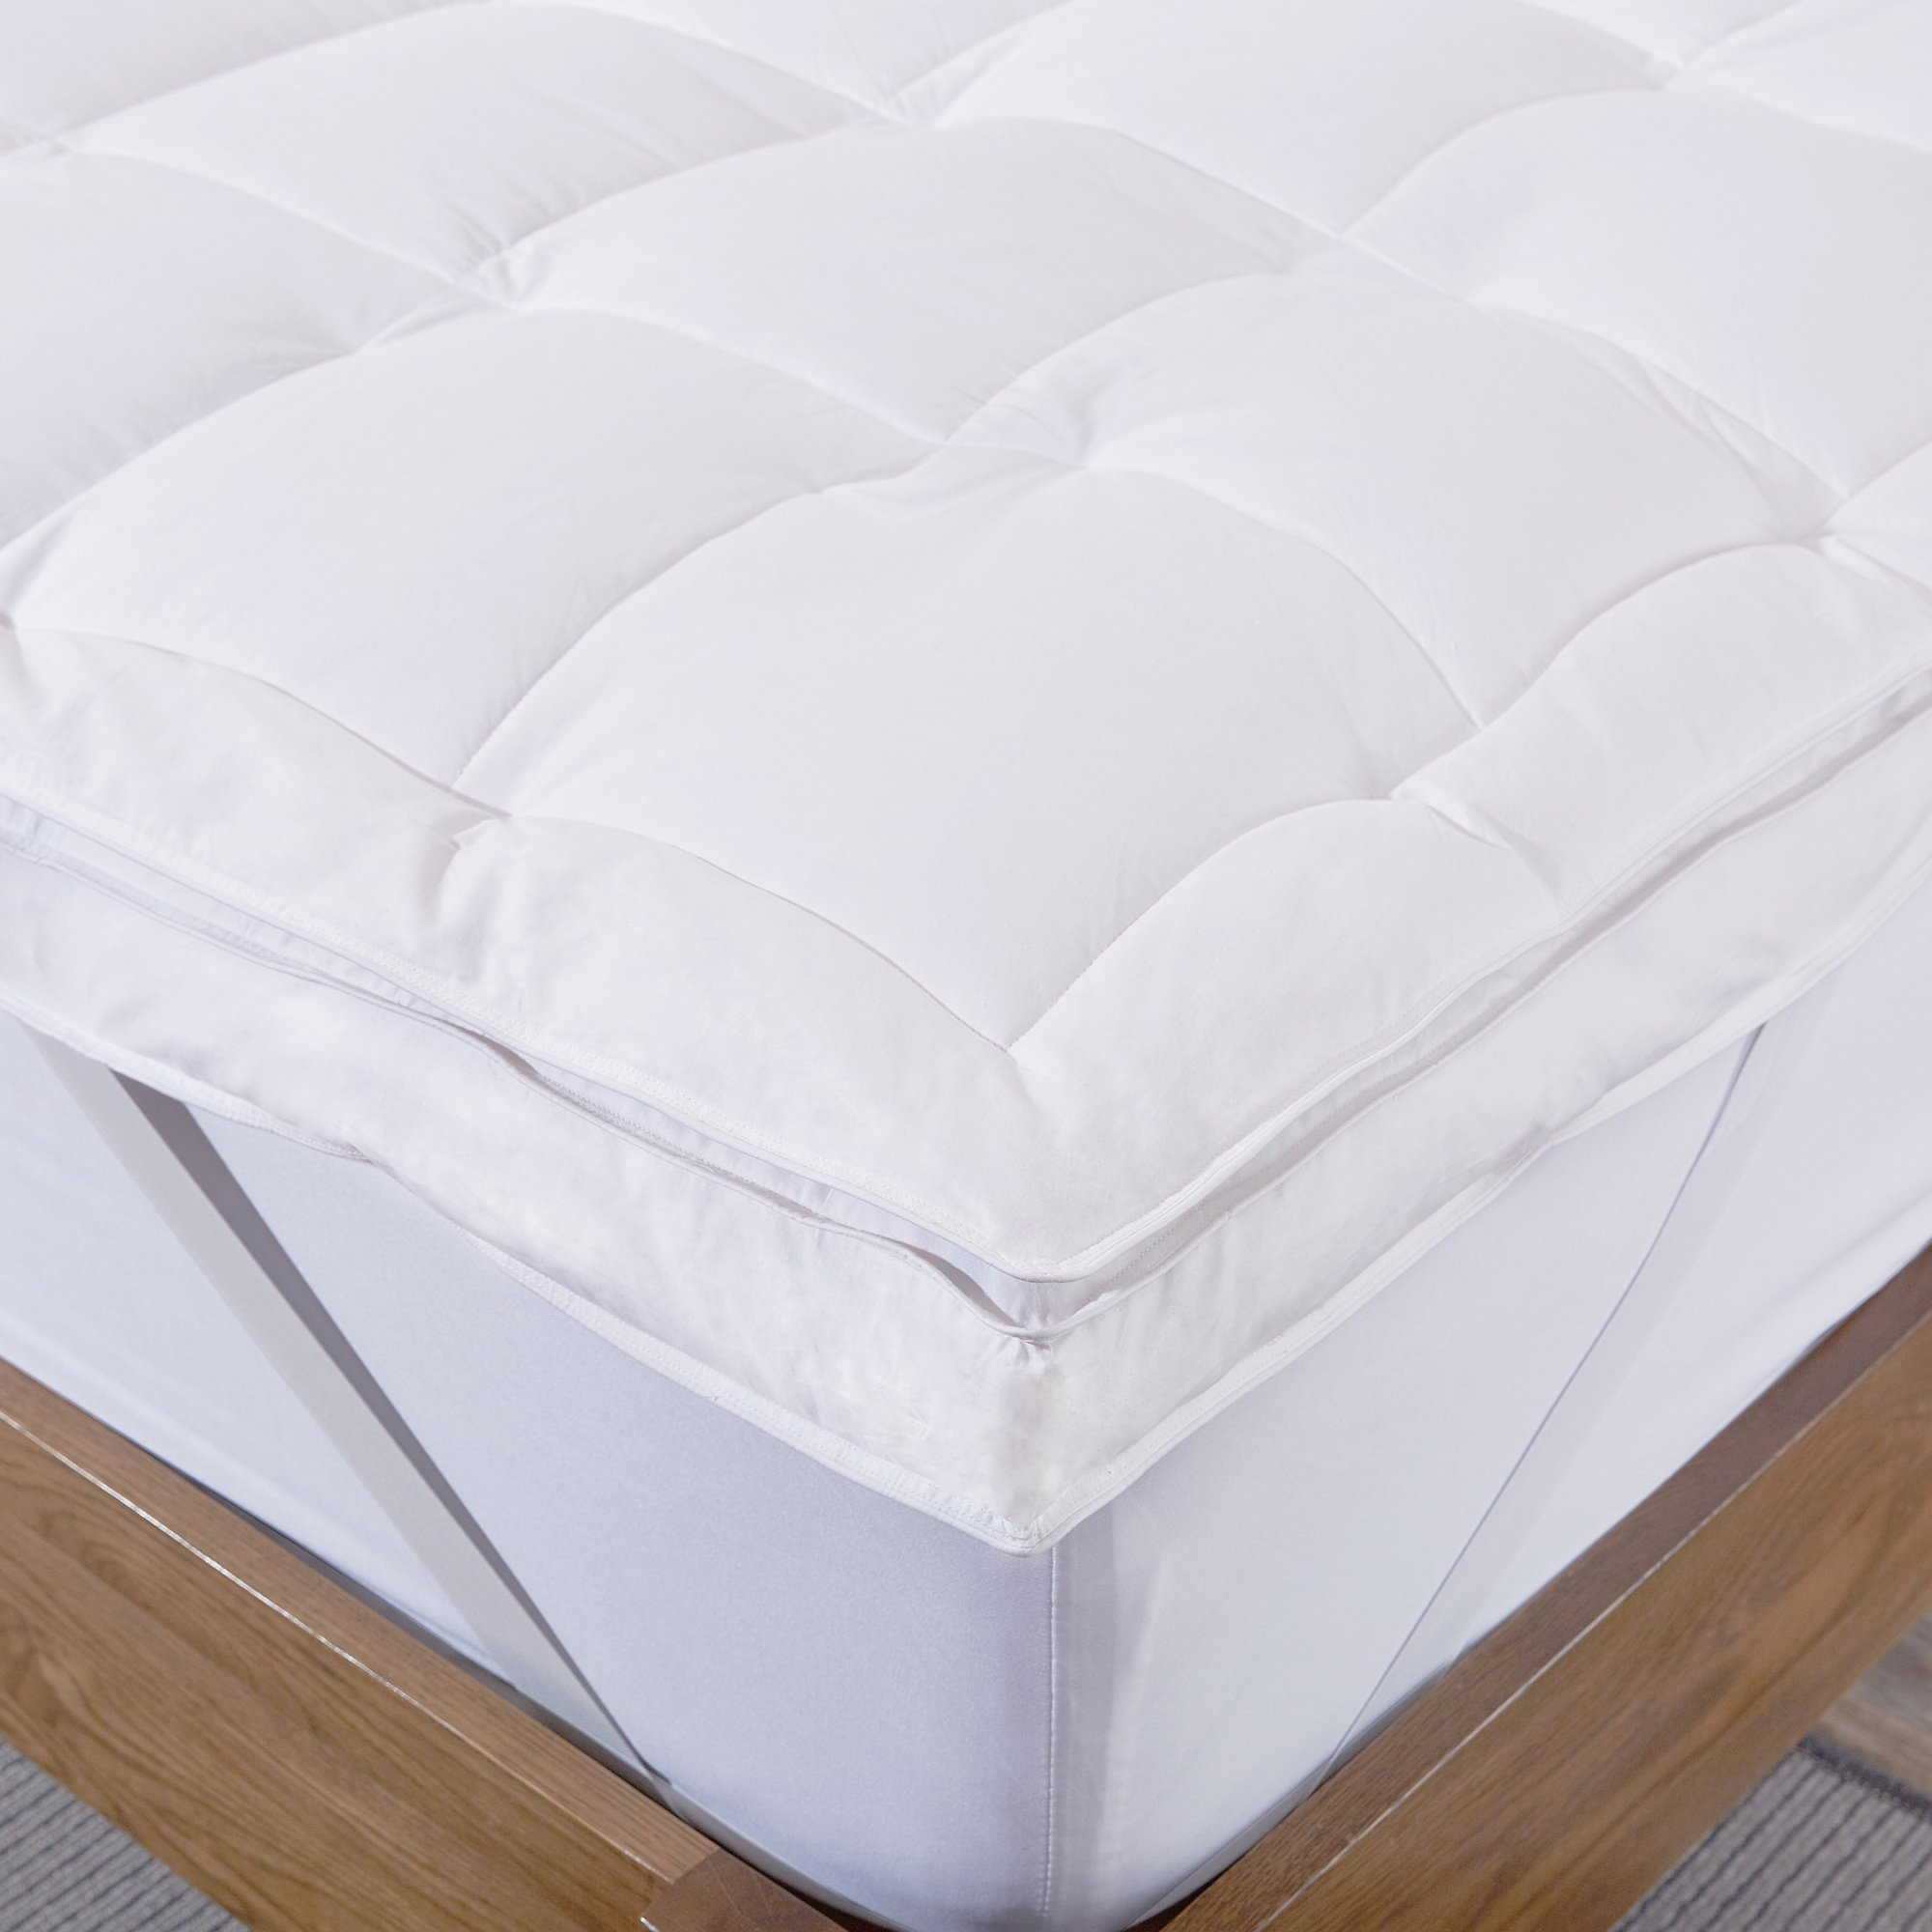 puredown Premium Natural White Goose Down Feather Overfilled Bed Topper 100% Cotton Fabric Mattress Pad Queen Down by puredown (Image #4)